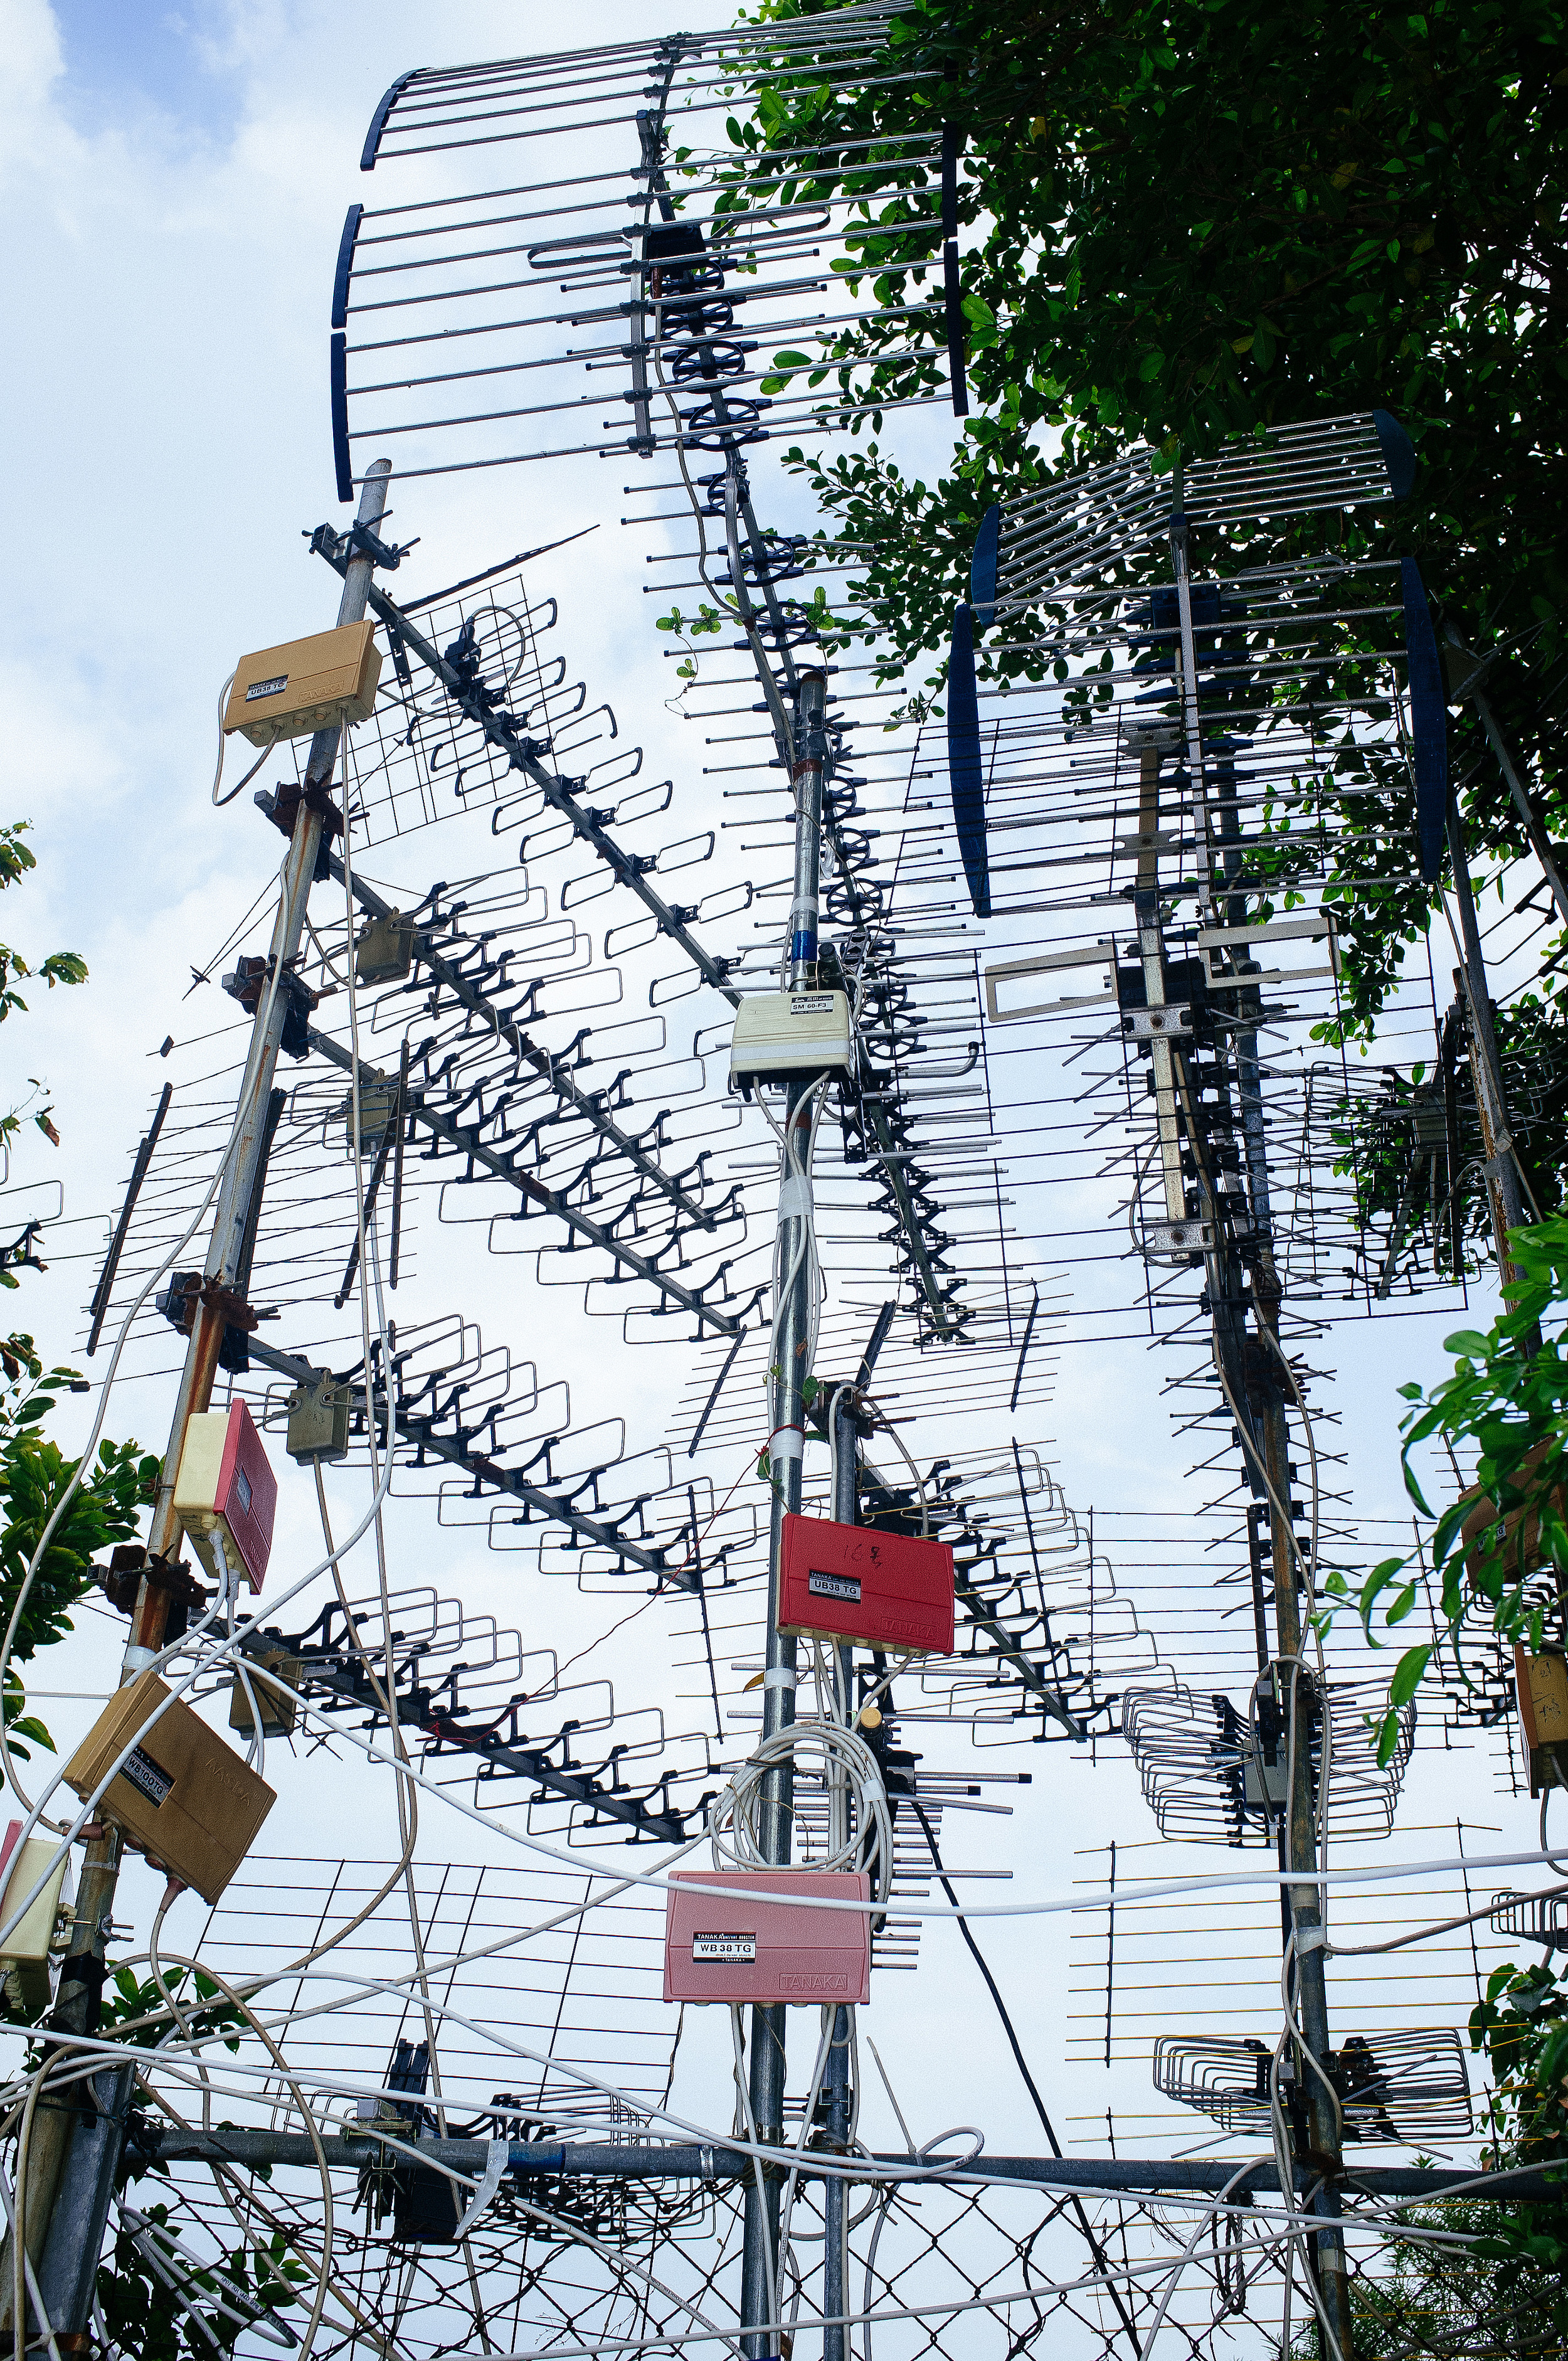 There are numerous antenna clusters around the island, of varying quality.